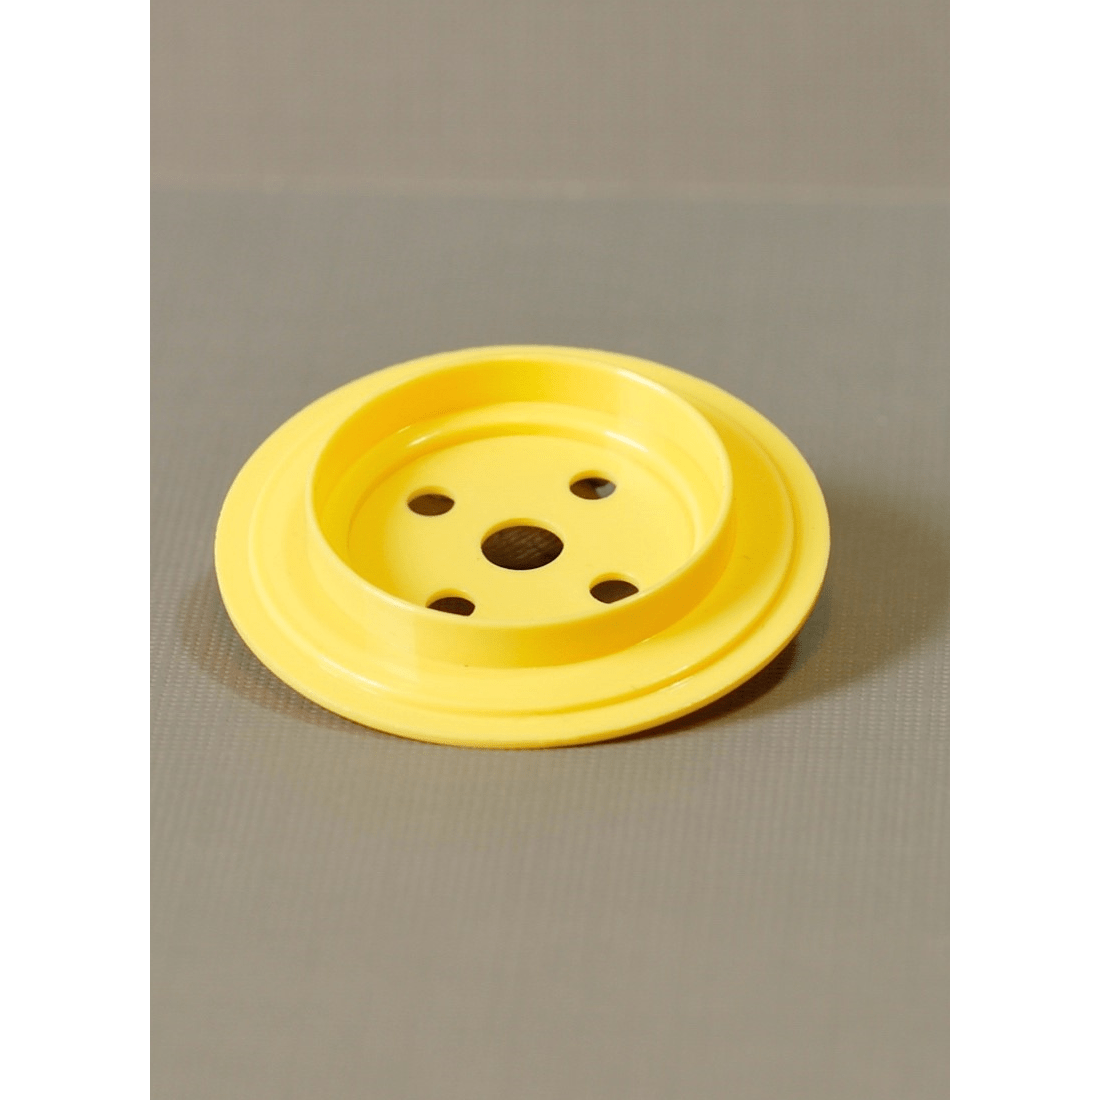 Special Needs Feeder Plate